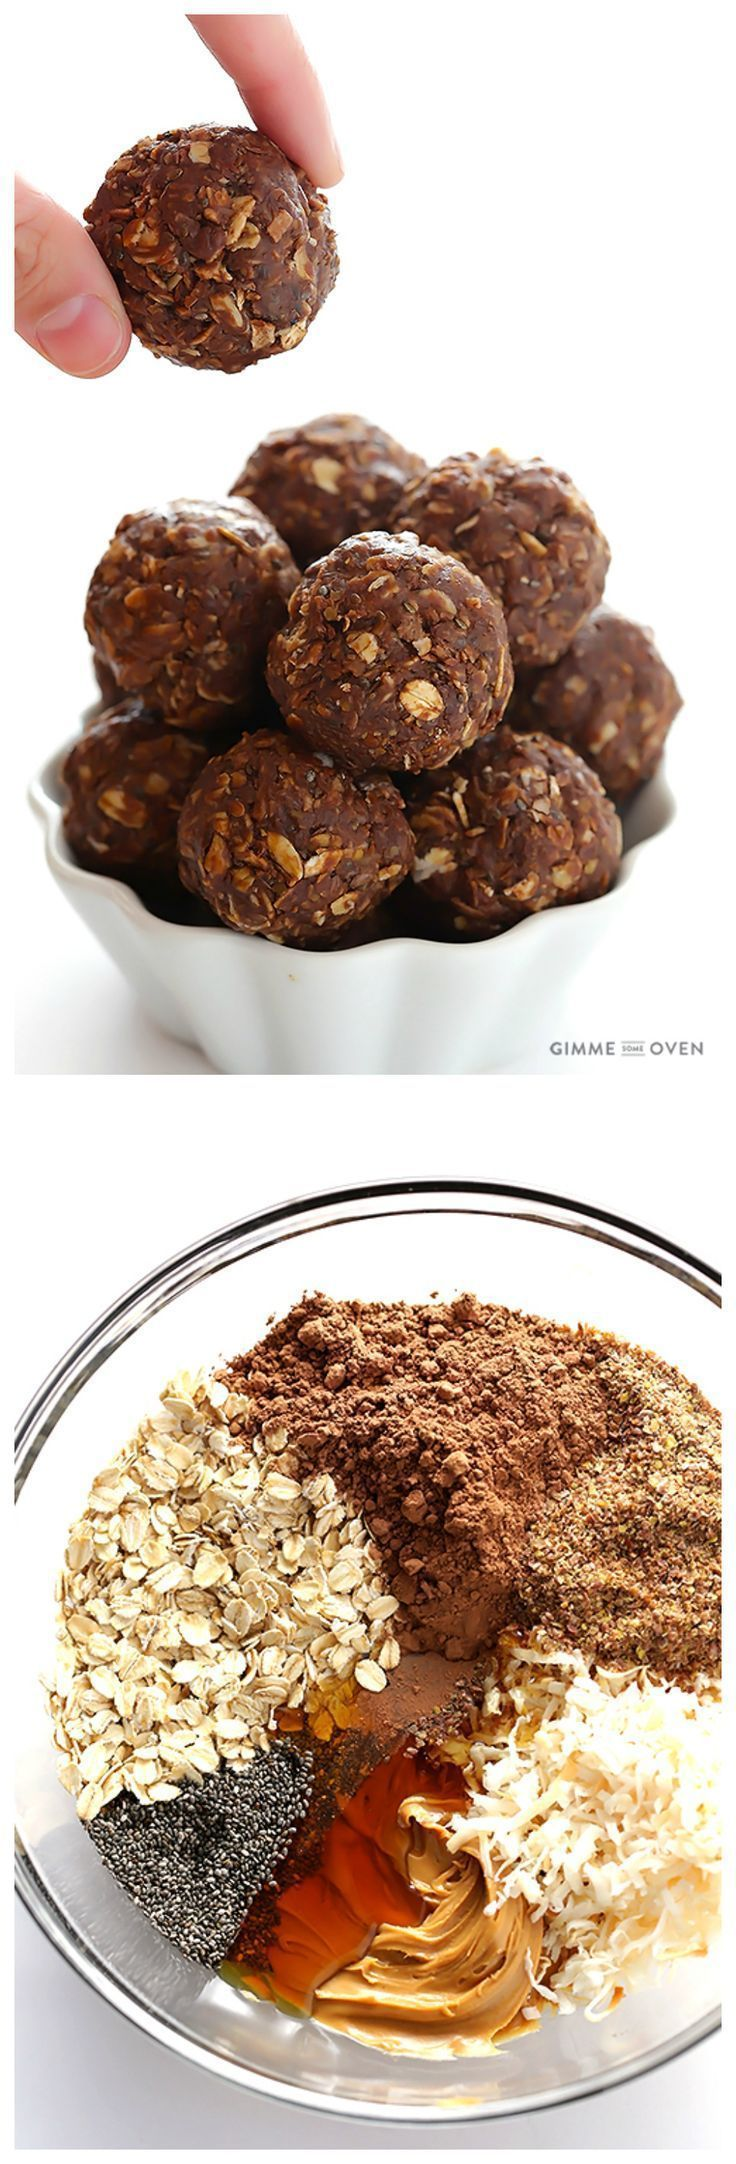 No-Bake Energy Bites (Naturally Sweetened) Chocolate Peanut Butter No-Bake Energy Bites -- full of protein, naturally-sweetened, and perfect for breakfast, snacking, or dessert!Chocolate Peanut Butter No-Bake Energy Bites -- full of protein, naturally-sweetened, and perfect for breakfast, snacking, or dessert!